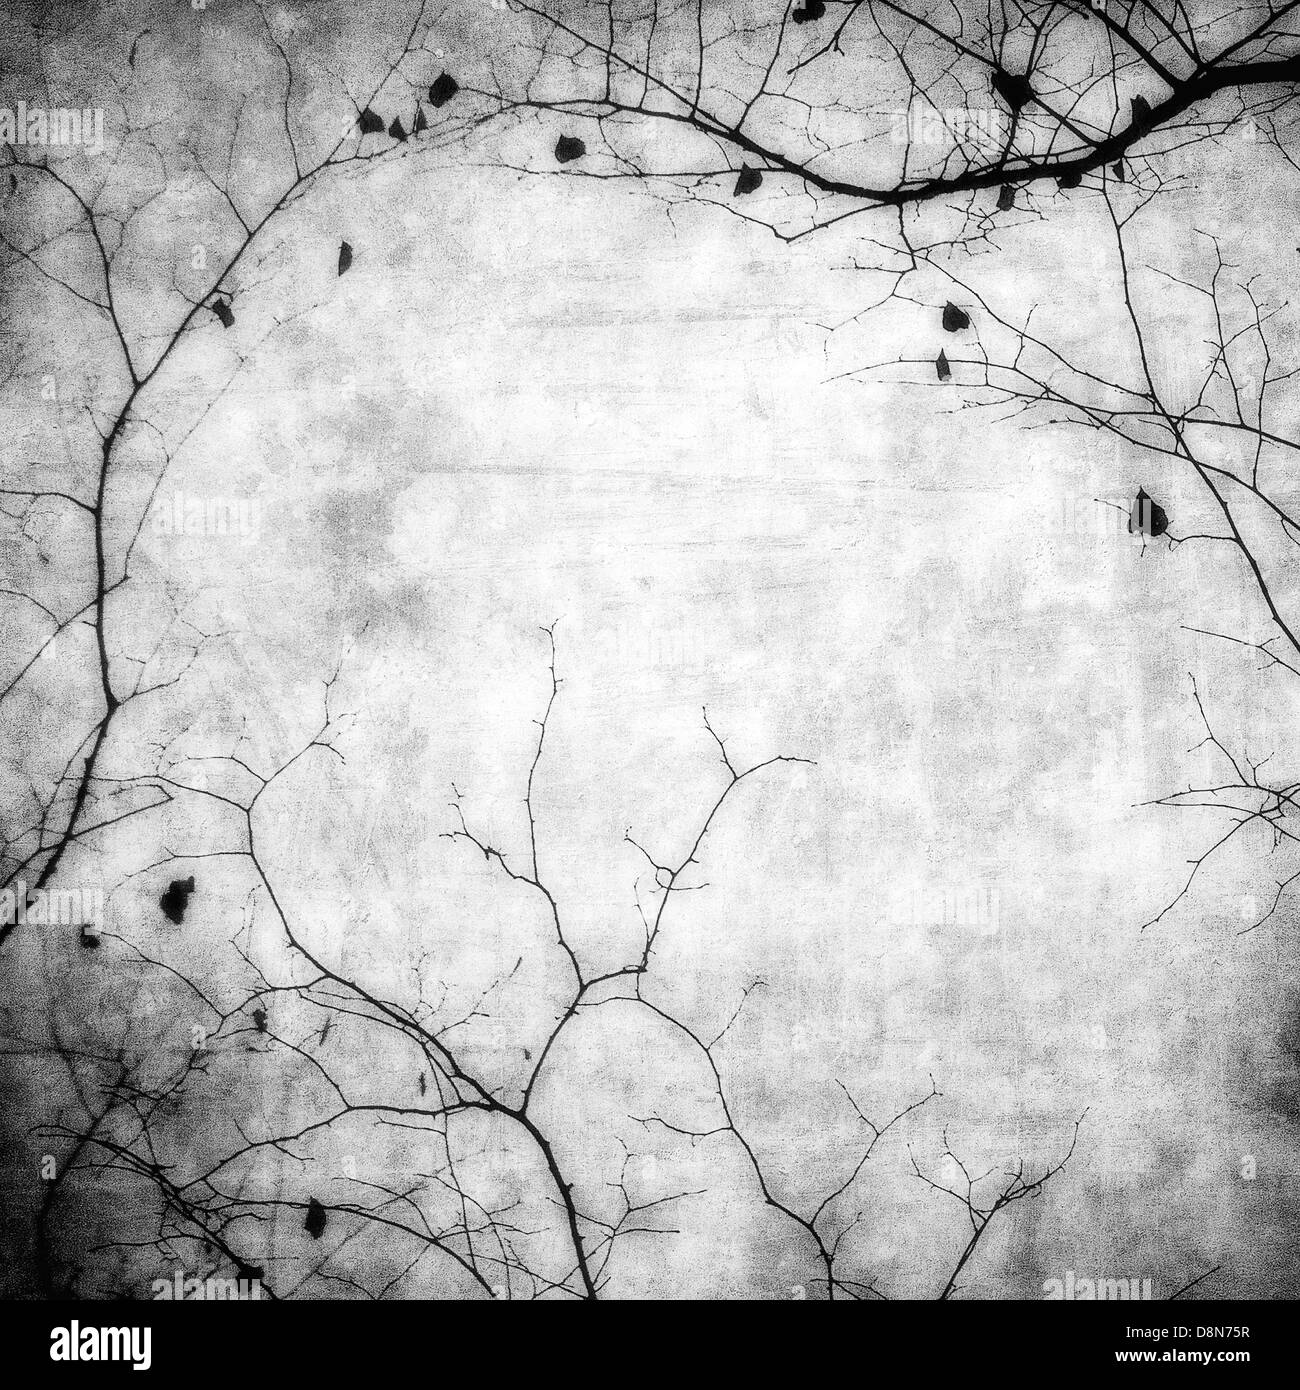 grunge frame with tree silhouettes - Stock Image